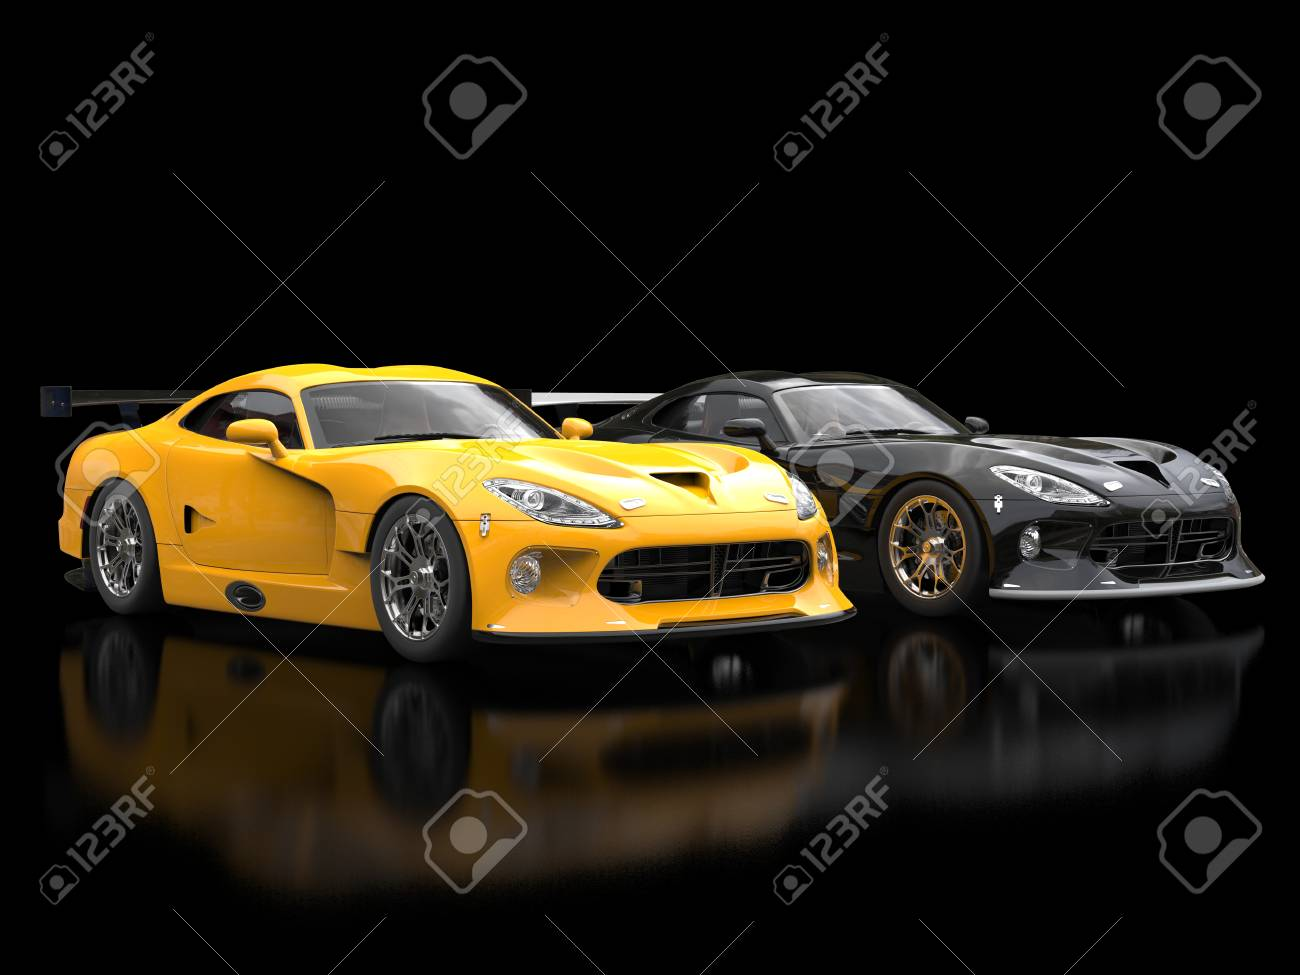 Modern Sports Cars Black And Yellow With Nice Blurry Reflections Stock Photo Picture And Royalty Free Image Image 77297122